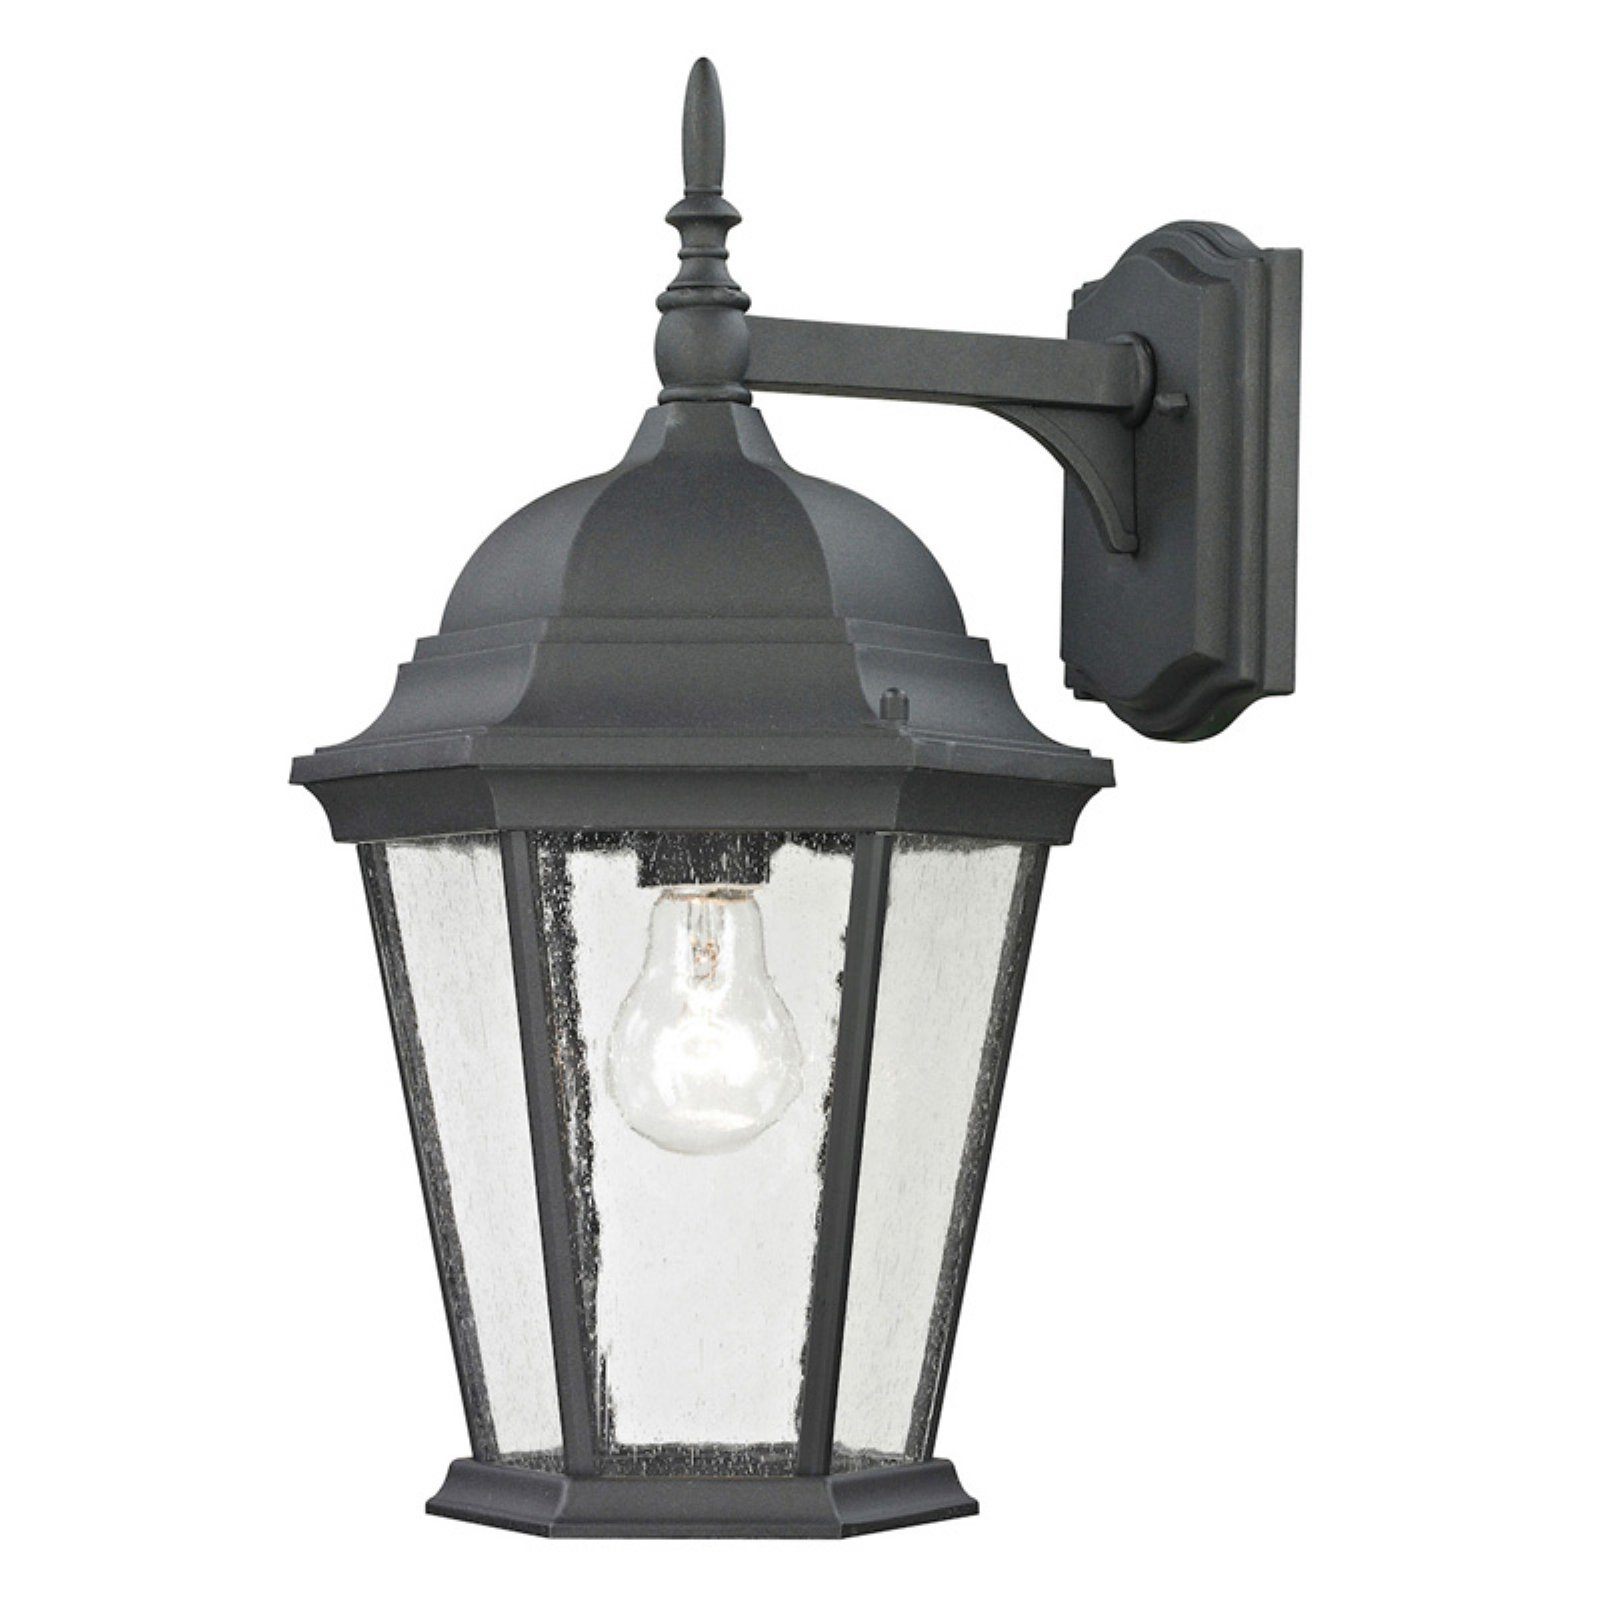 Thomas Lighting Temple Hill 8101 Outdoor Wall Sconce by CornerStone